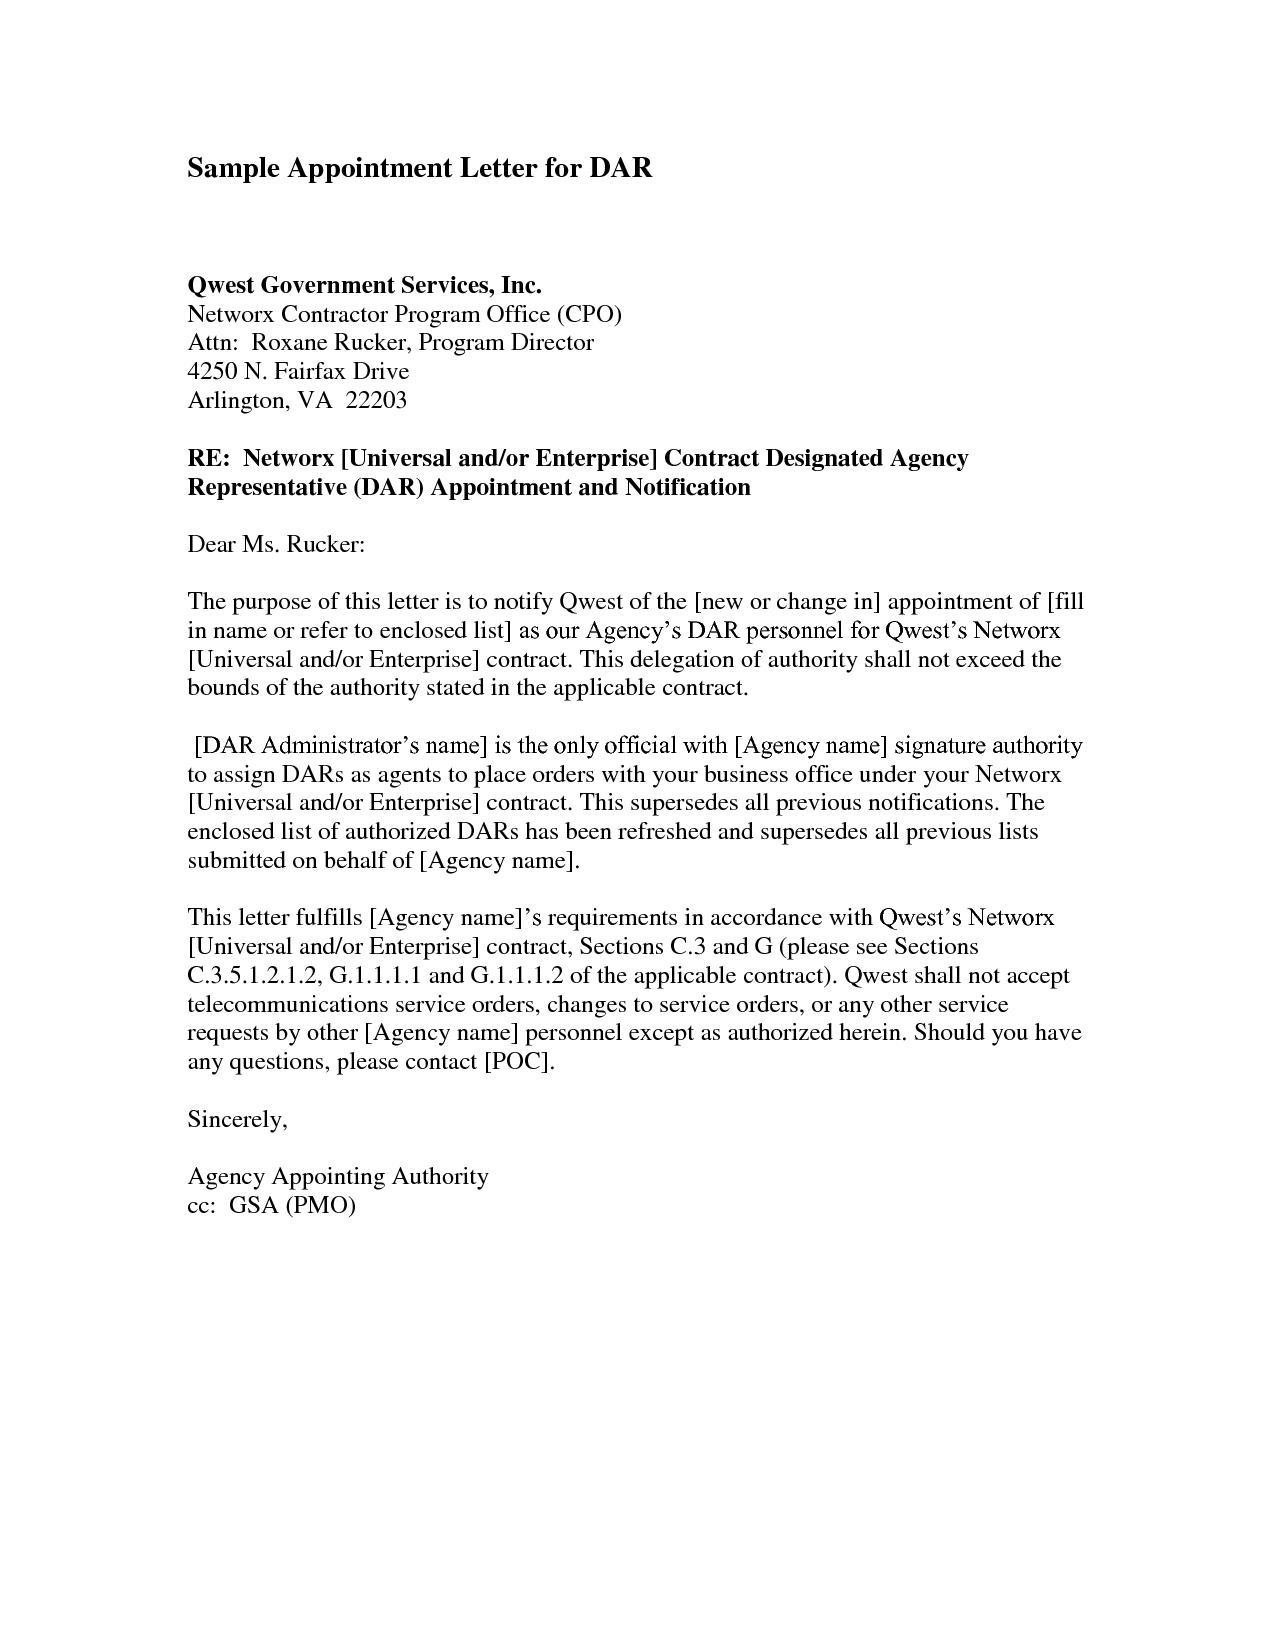 Independent Contractor Offer Letter Template Examples | Letter